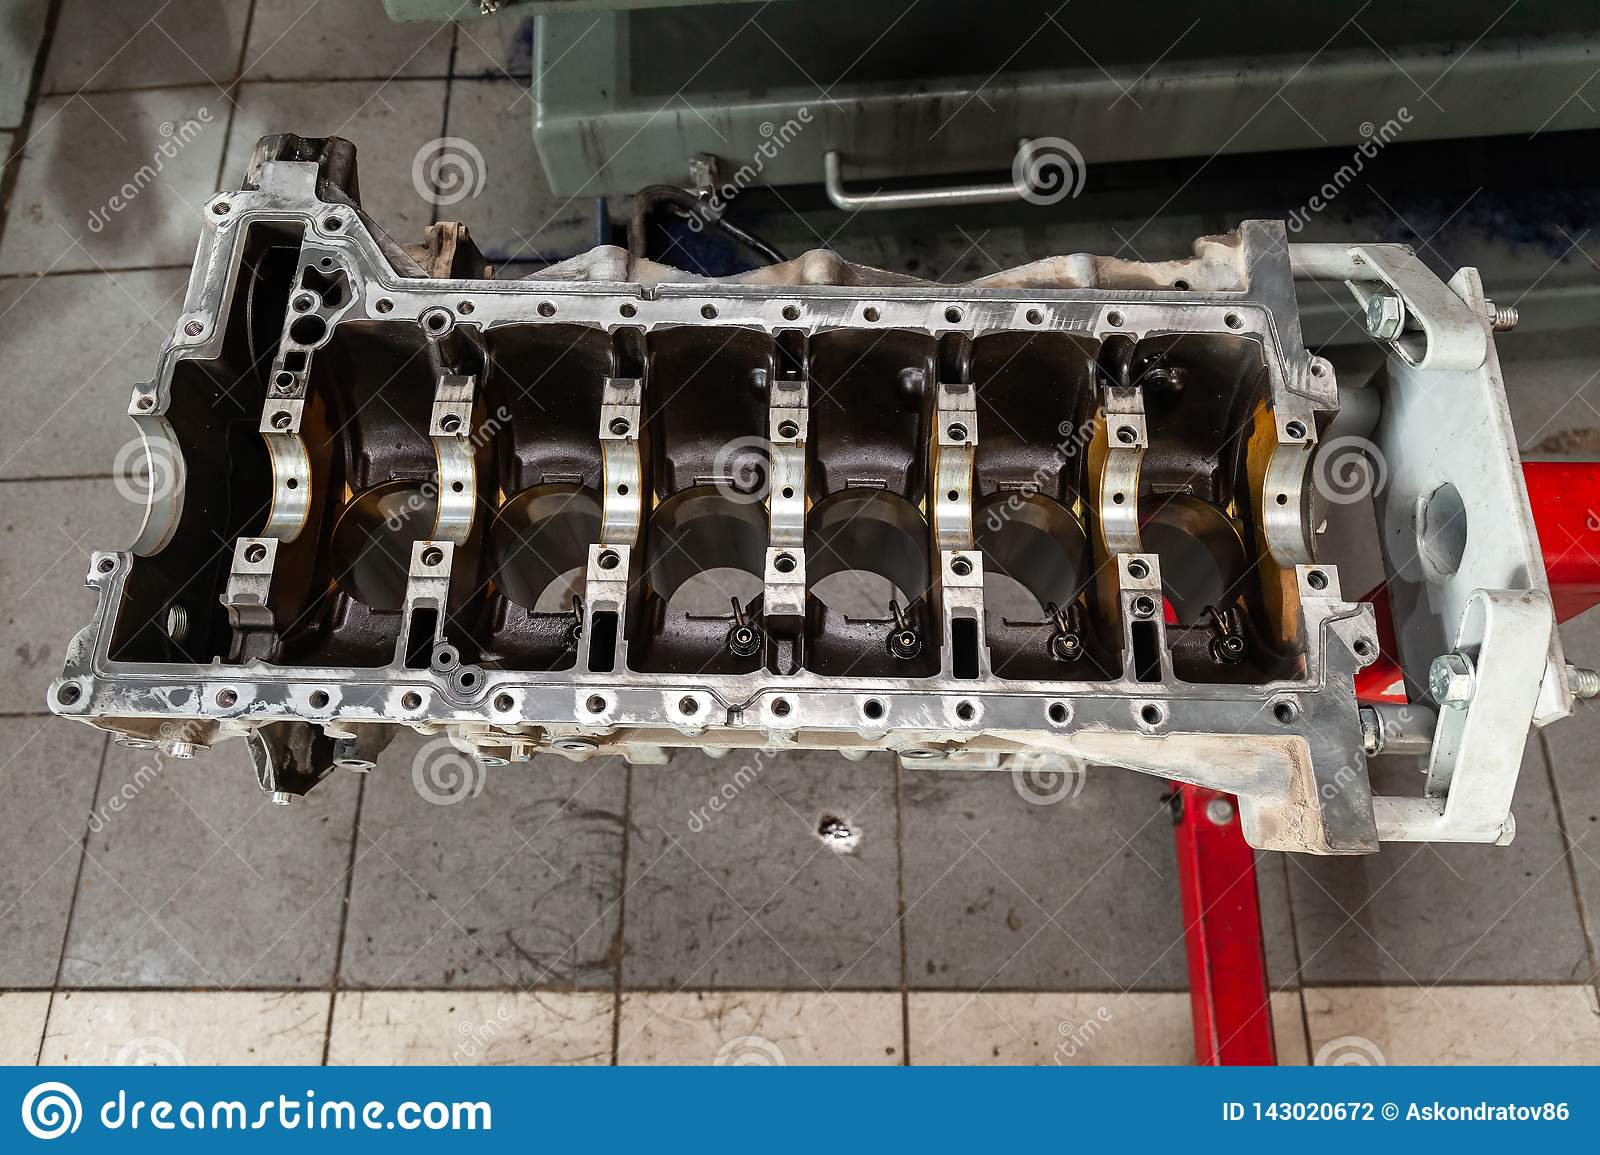 Replacement engine used on a crane mounted for installation on a car after a breakdown and repair in a car repair workshop as a